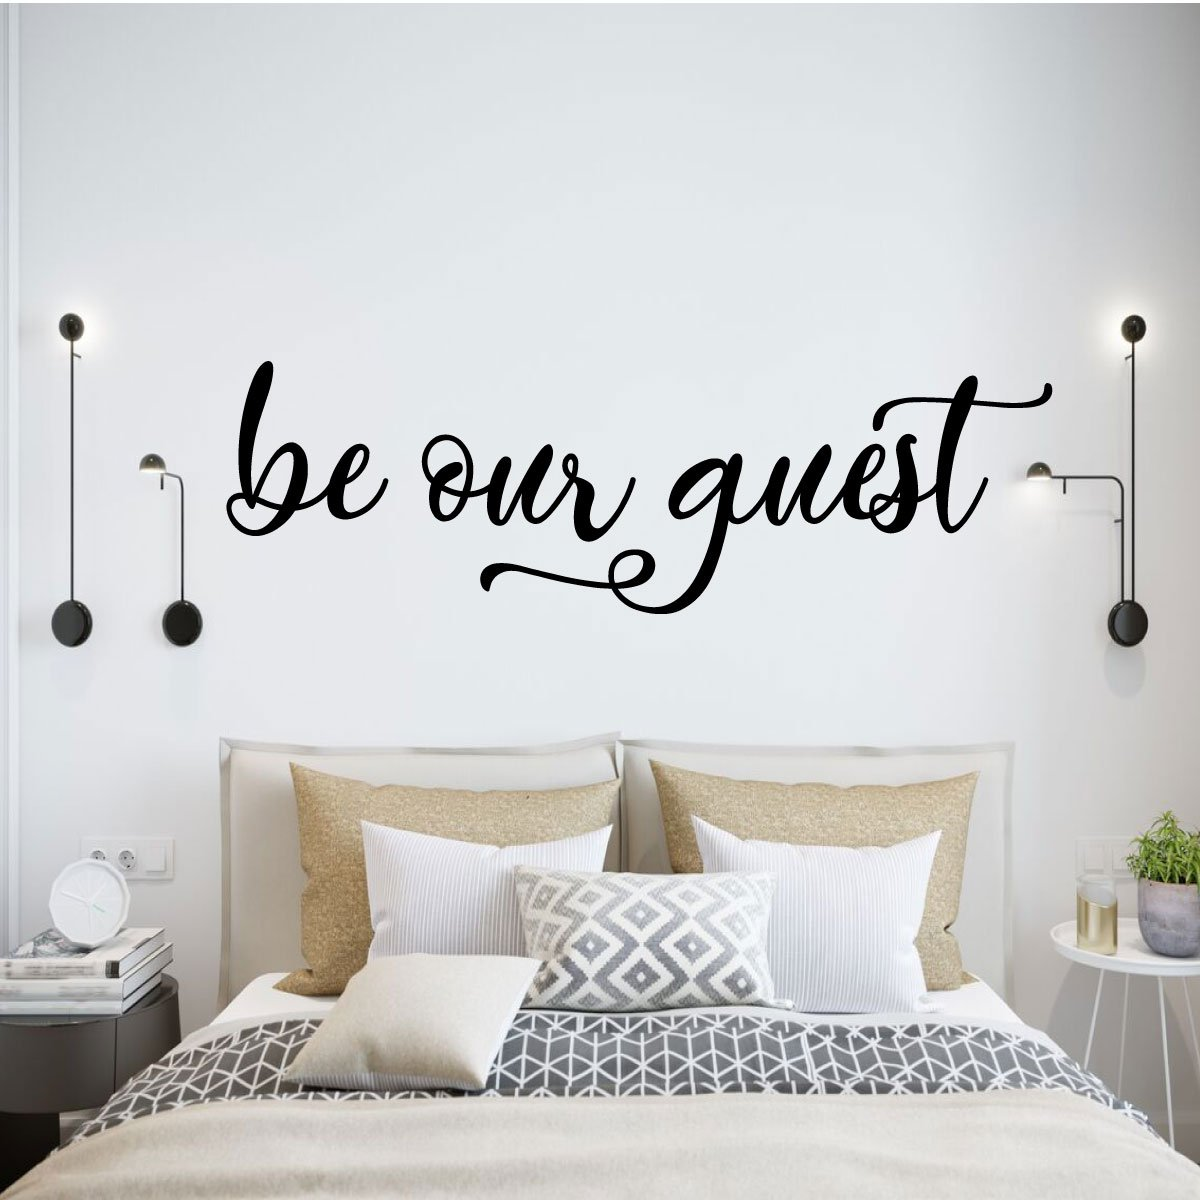 Be Our Guest Wall Decor for Decorating Home Guest Bedroom, Hotel, Bed and Breakfast